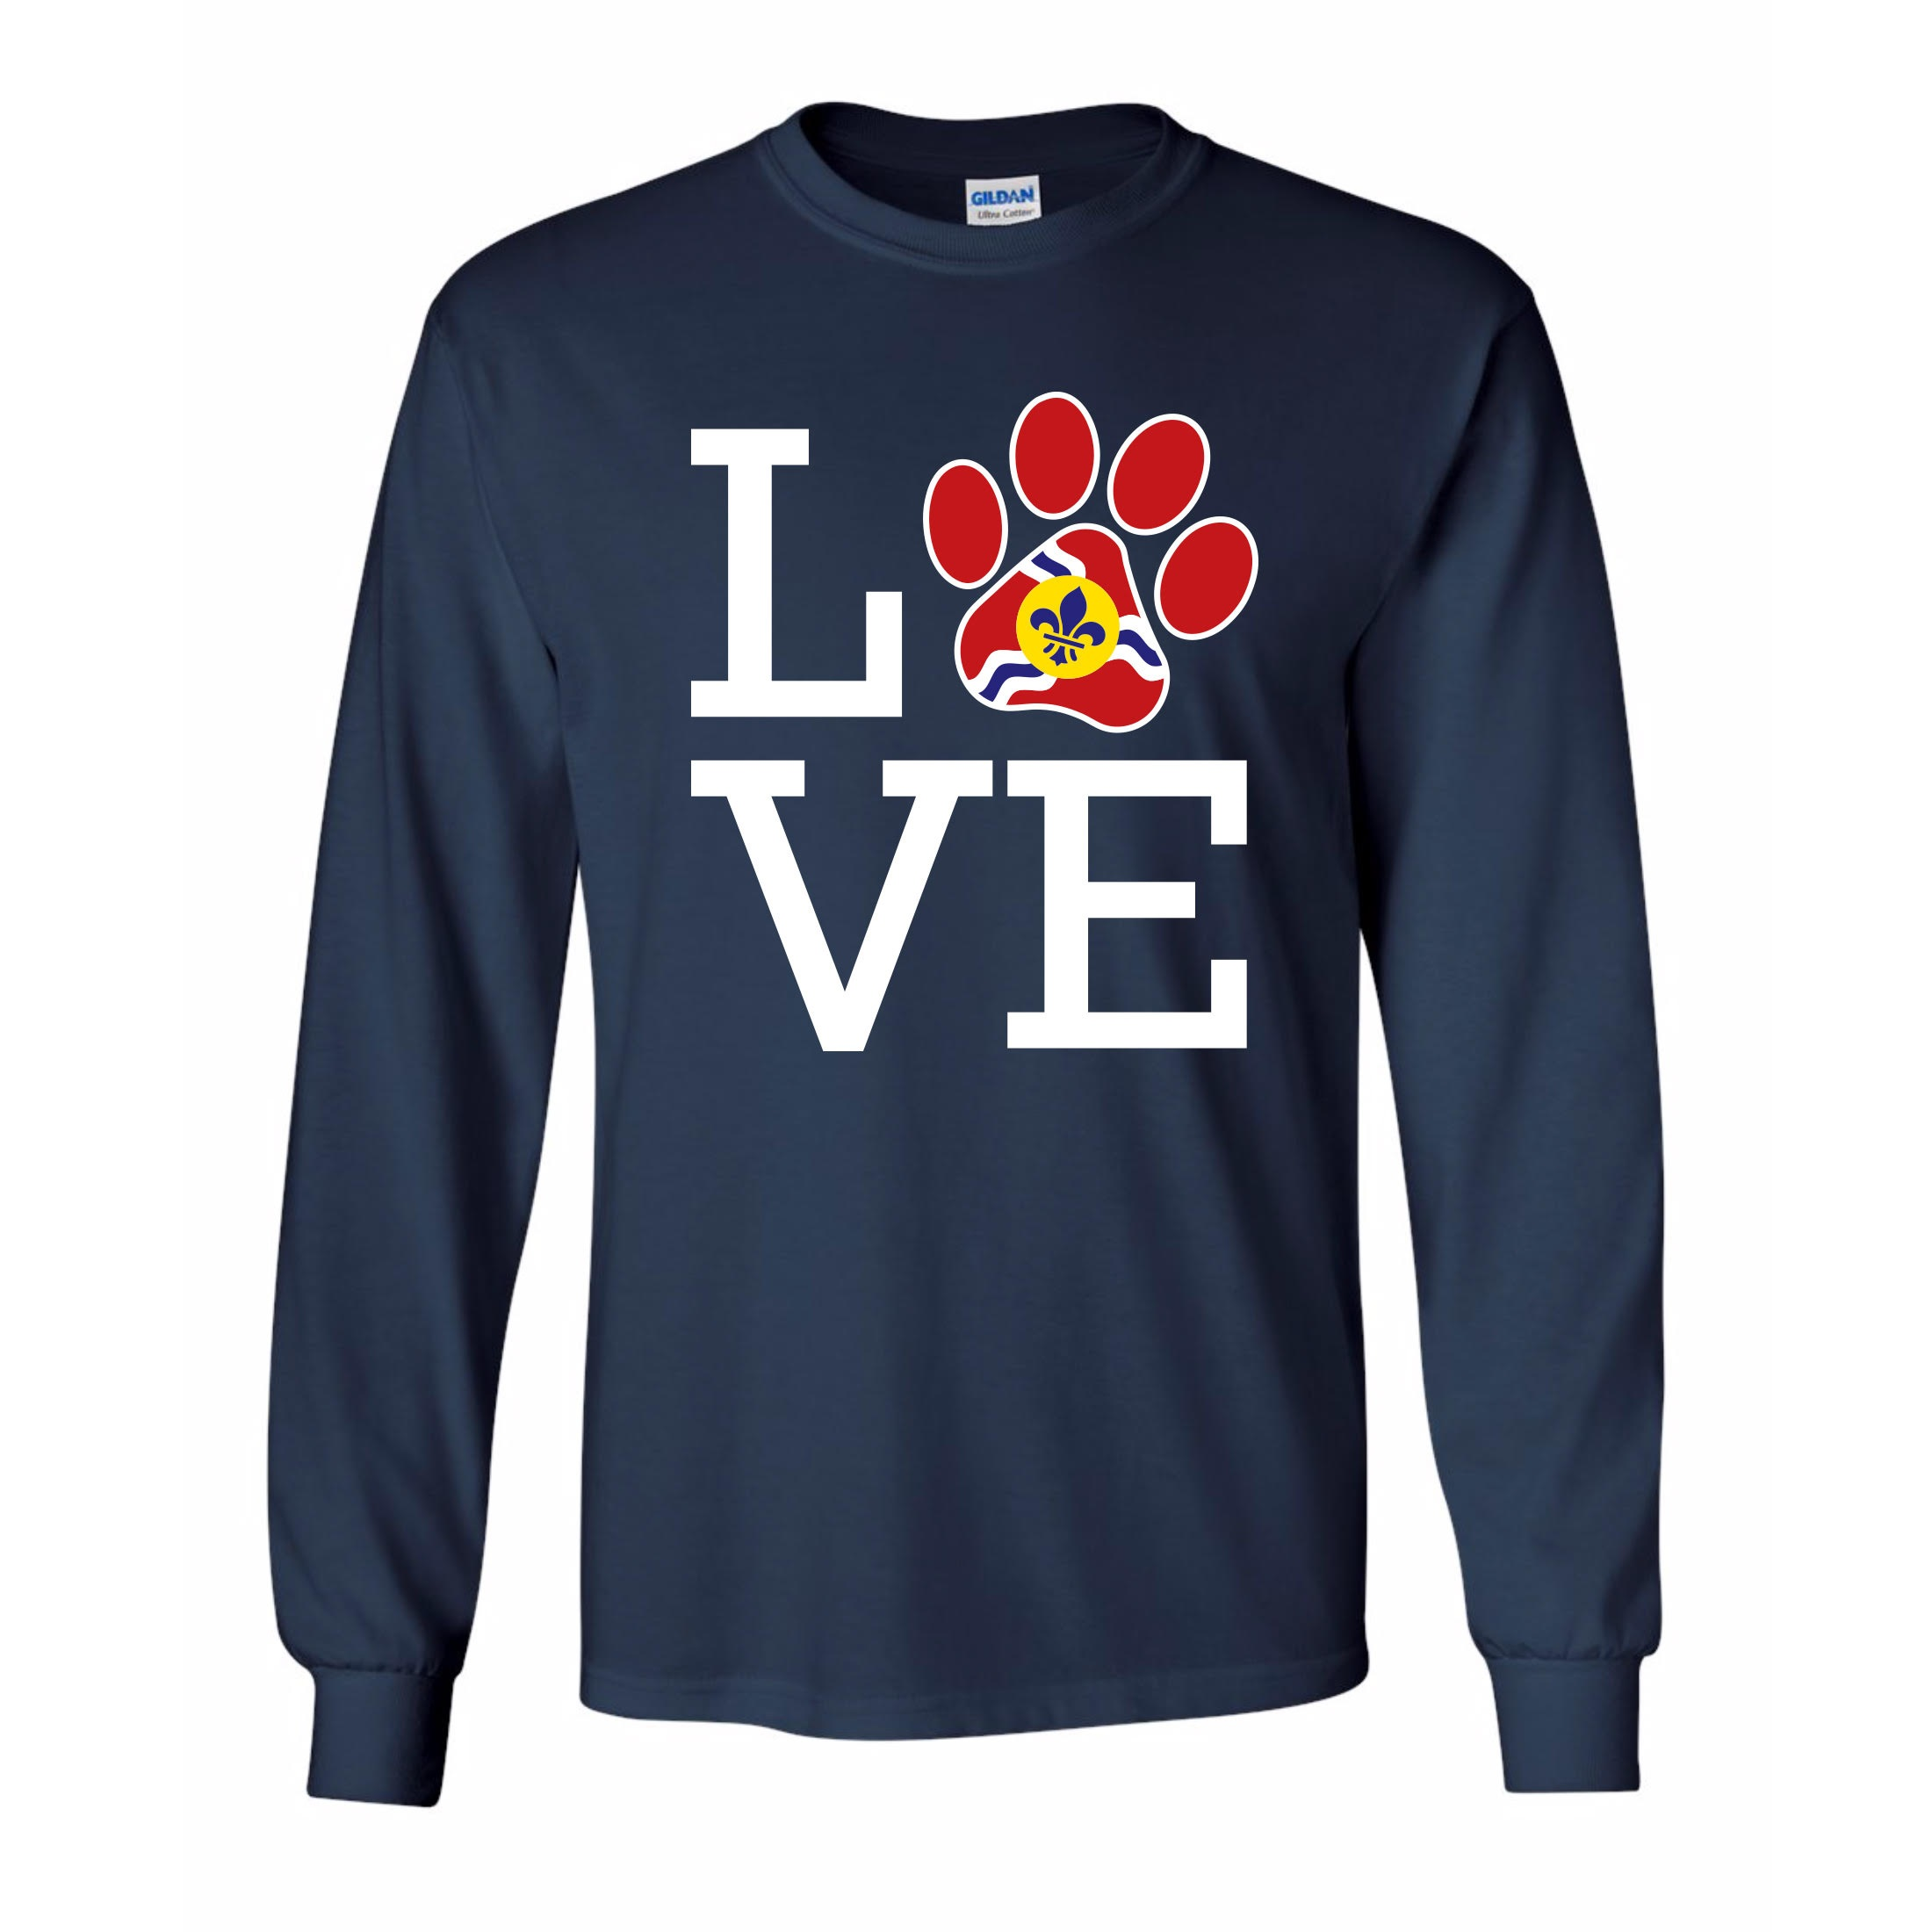 "- Long Sleeve Navy ""STL Love"".$25.00- Super Soft combed and ringspun cotton or cotton/polyester depending on color- Side seams, retail fit- Shoulder to shoulder taping- Unisex sizing"